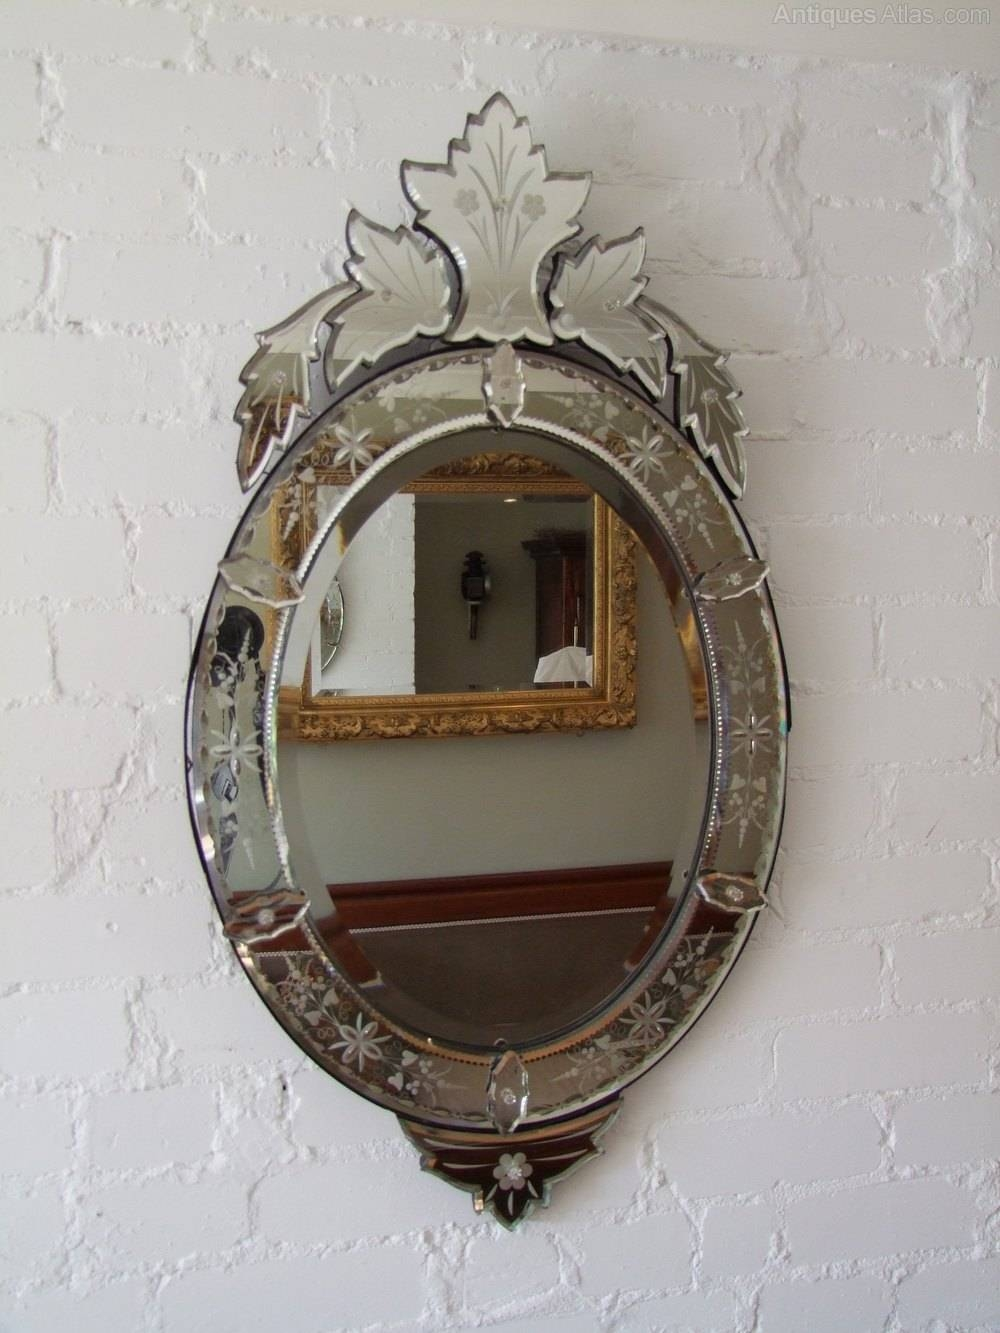 Antiques Atlas – Oval Venetian Mirror Within Venetian Oval Mirrors (View 7 of 15)